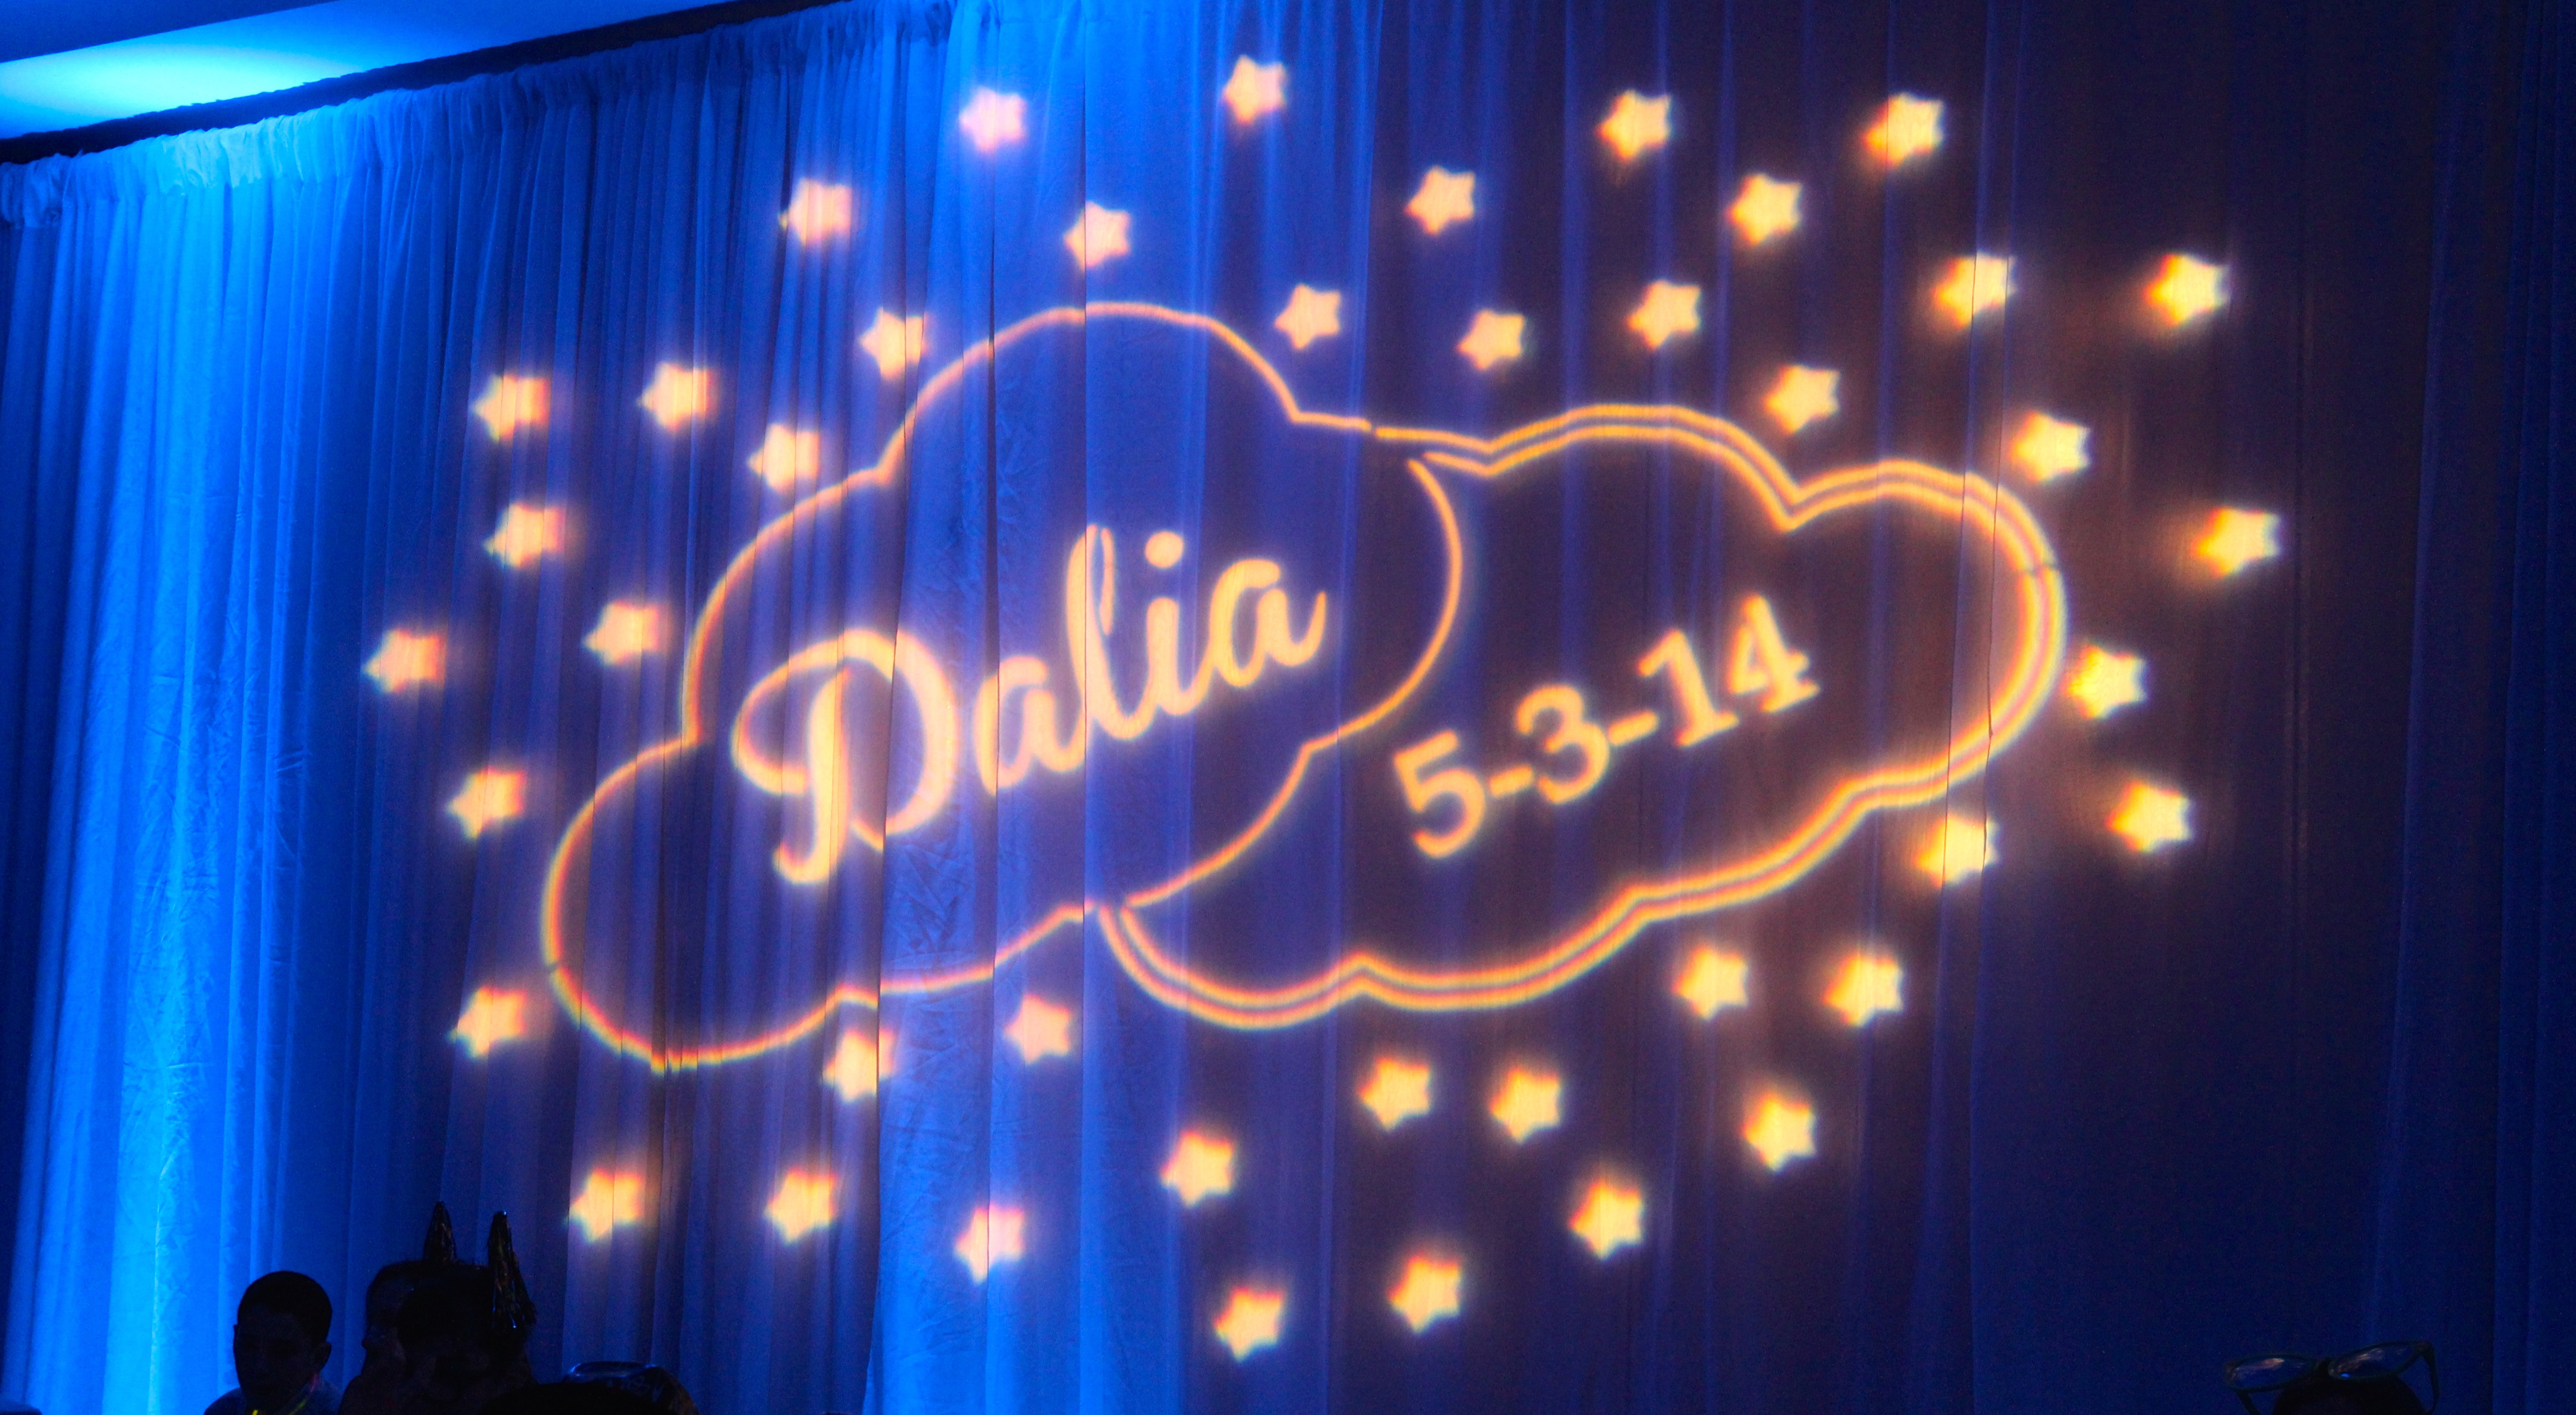 ... Bu0027nai Mitzvah Childrenu0027s Names), Initials, Date And/or Logo On The  Dance Floor, Ceiling Or Wall. Every Design Is Custom Created For The Event,  ...